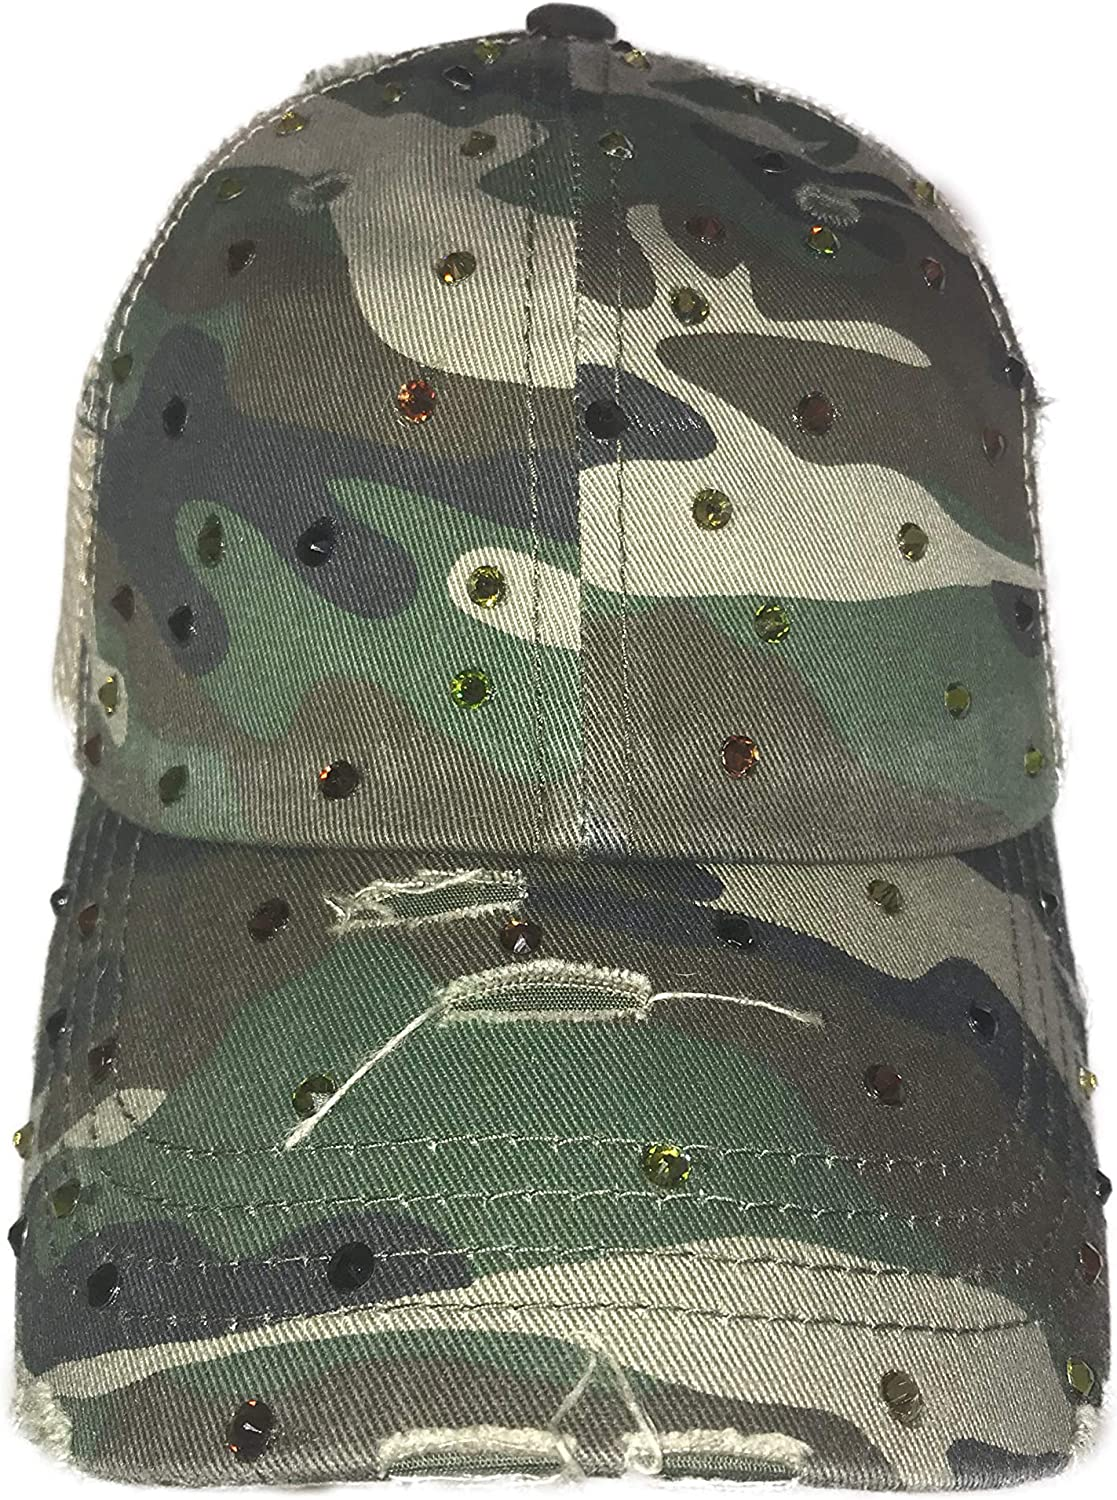 Blinging for Tipps Camo Ponytail Hat with Swarovski Crystals